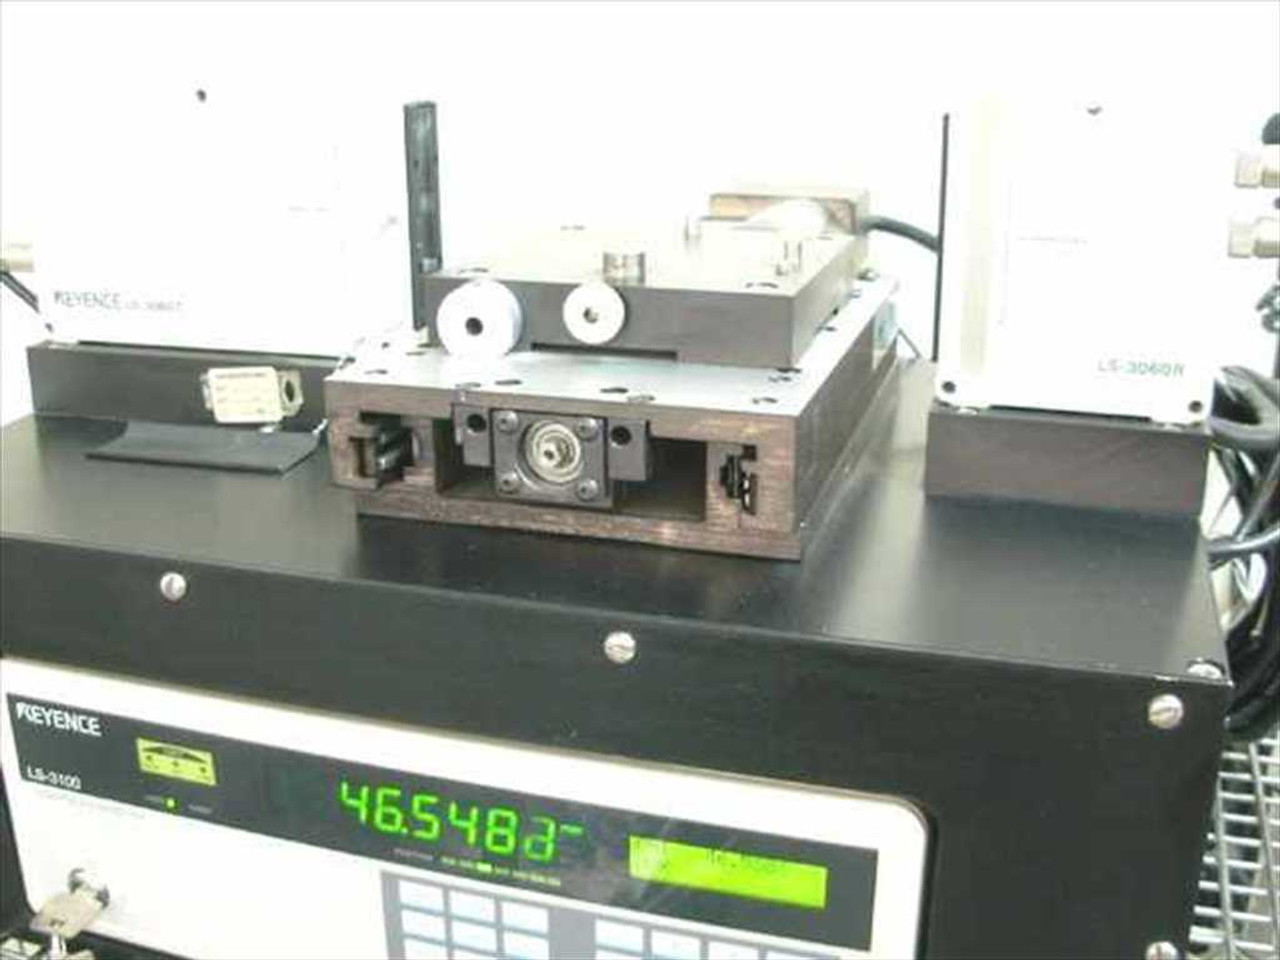 Keyence LS-3100 Laser Micrometer System with Aerotech Stage